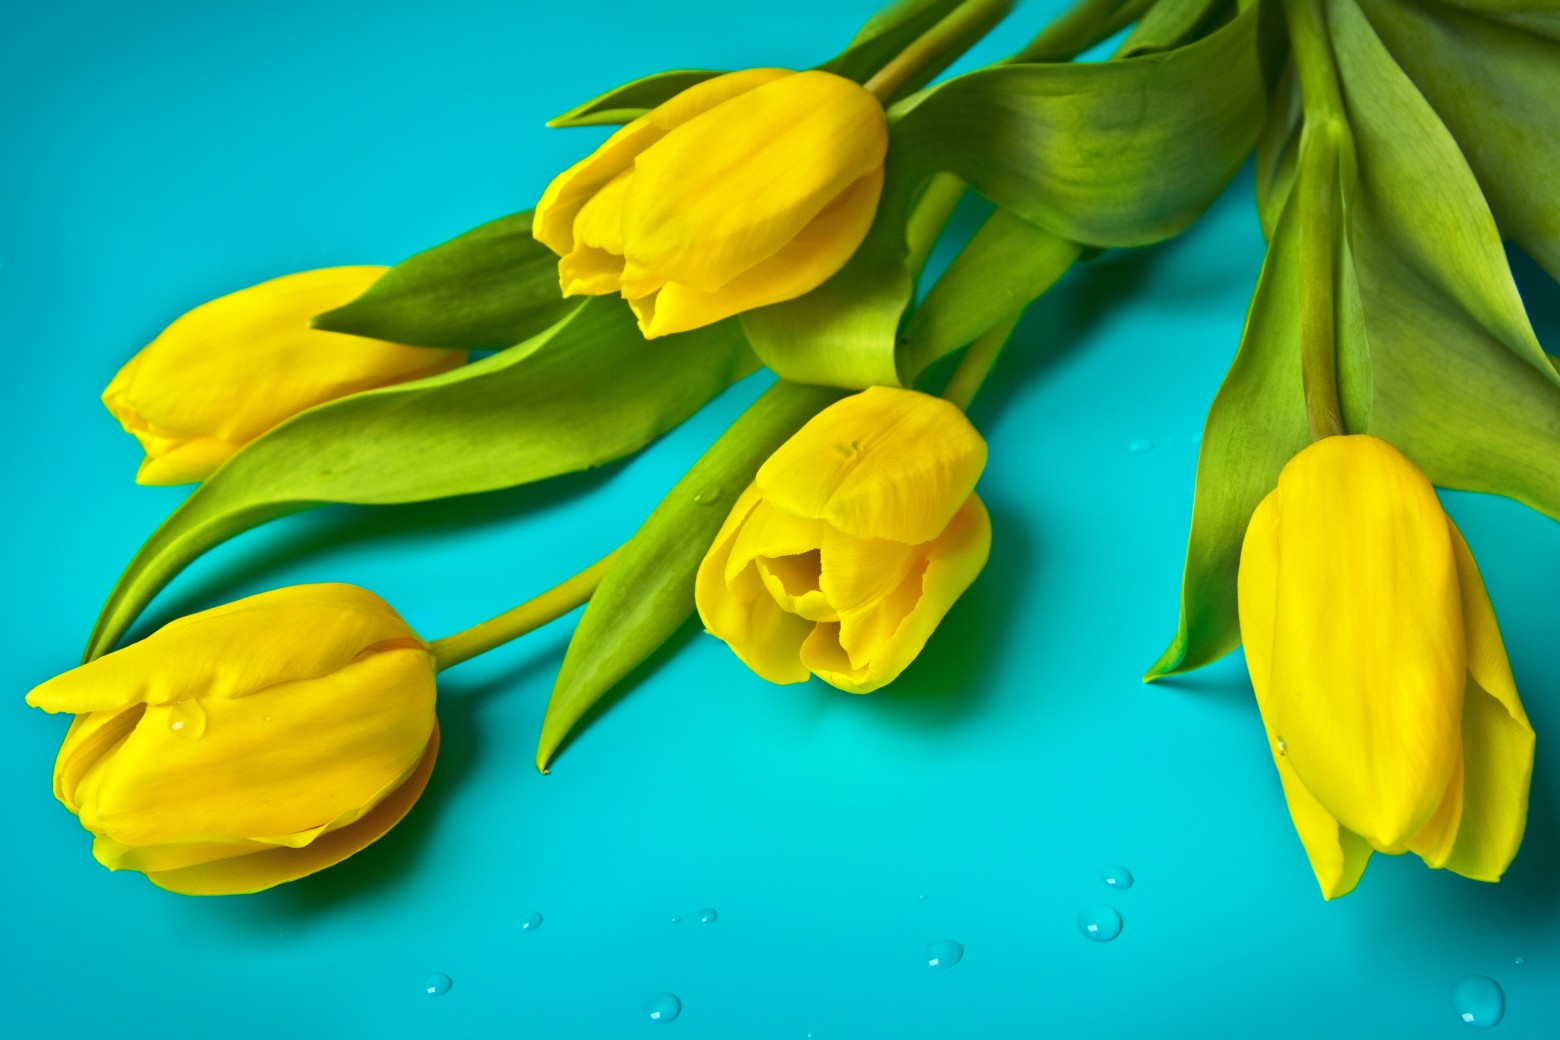 hd wallpaper yellow